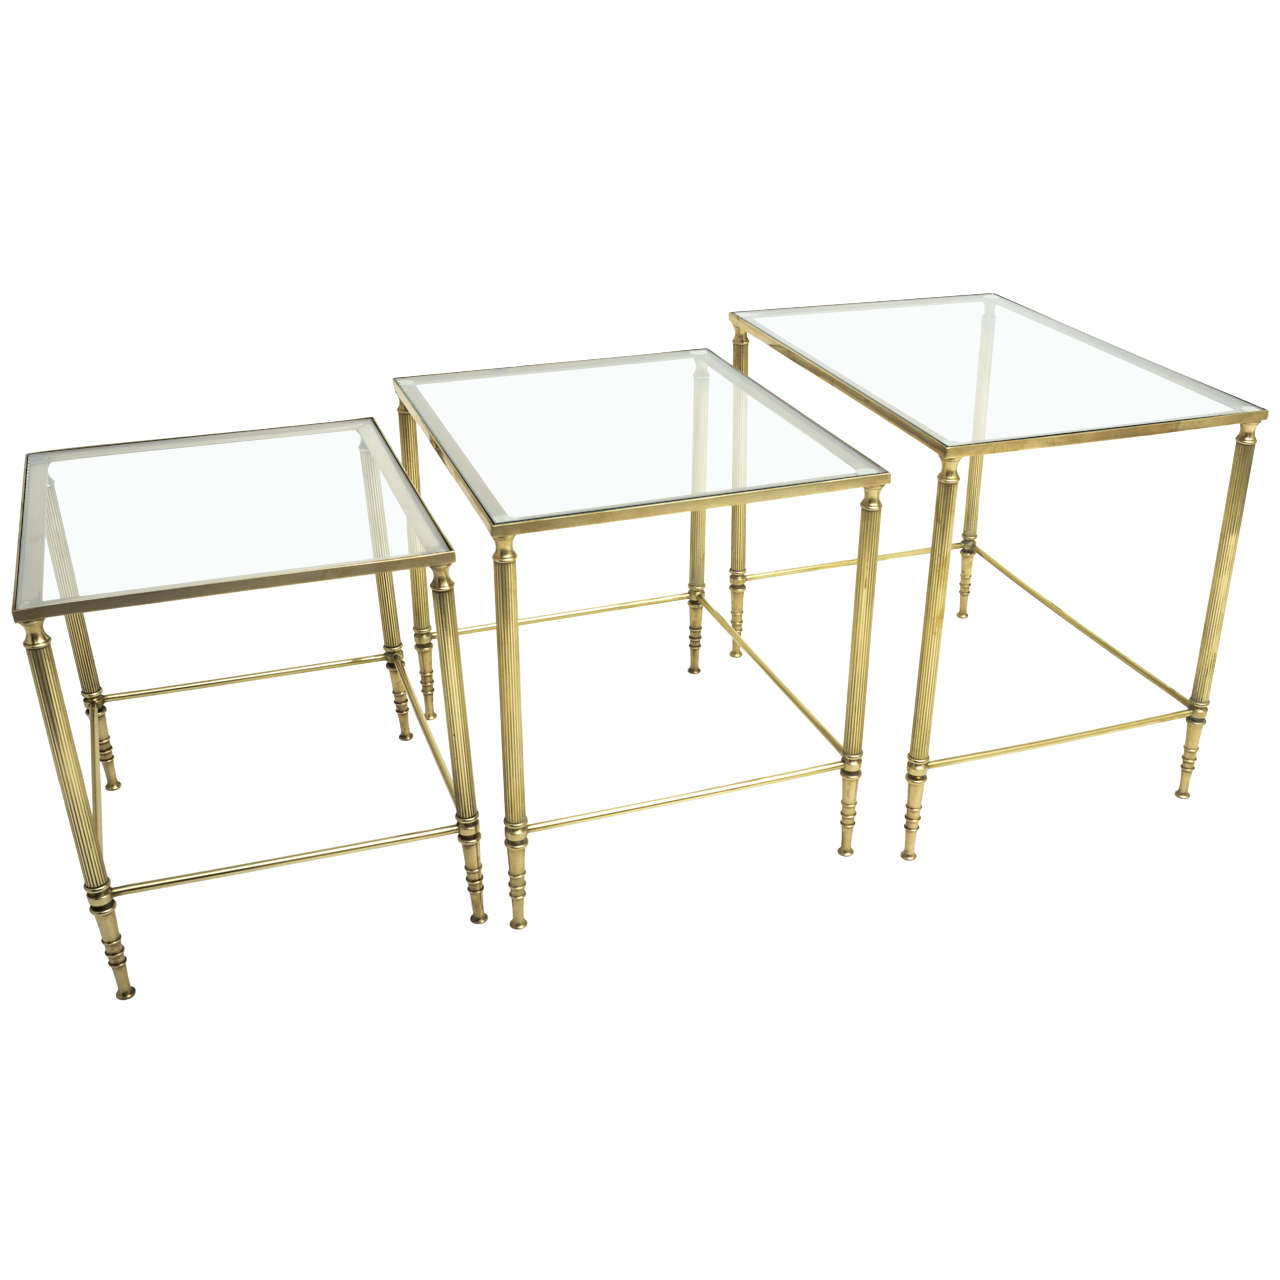 Mid century modern french brass and glass nesting tables at 1stdibs mid century modern french brass and glass nesting tables for sale watchthetrailerfo